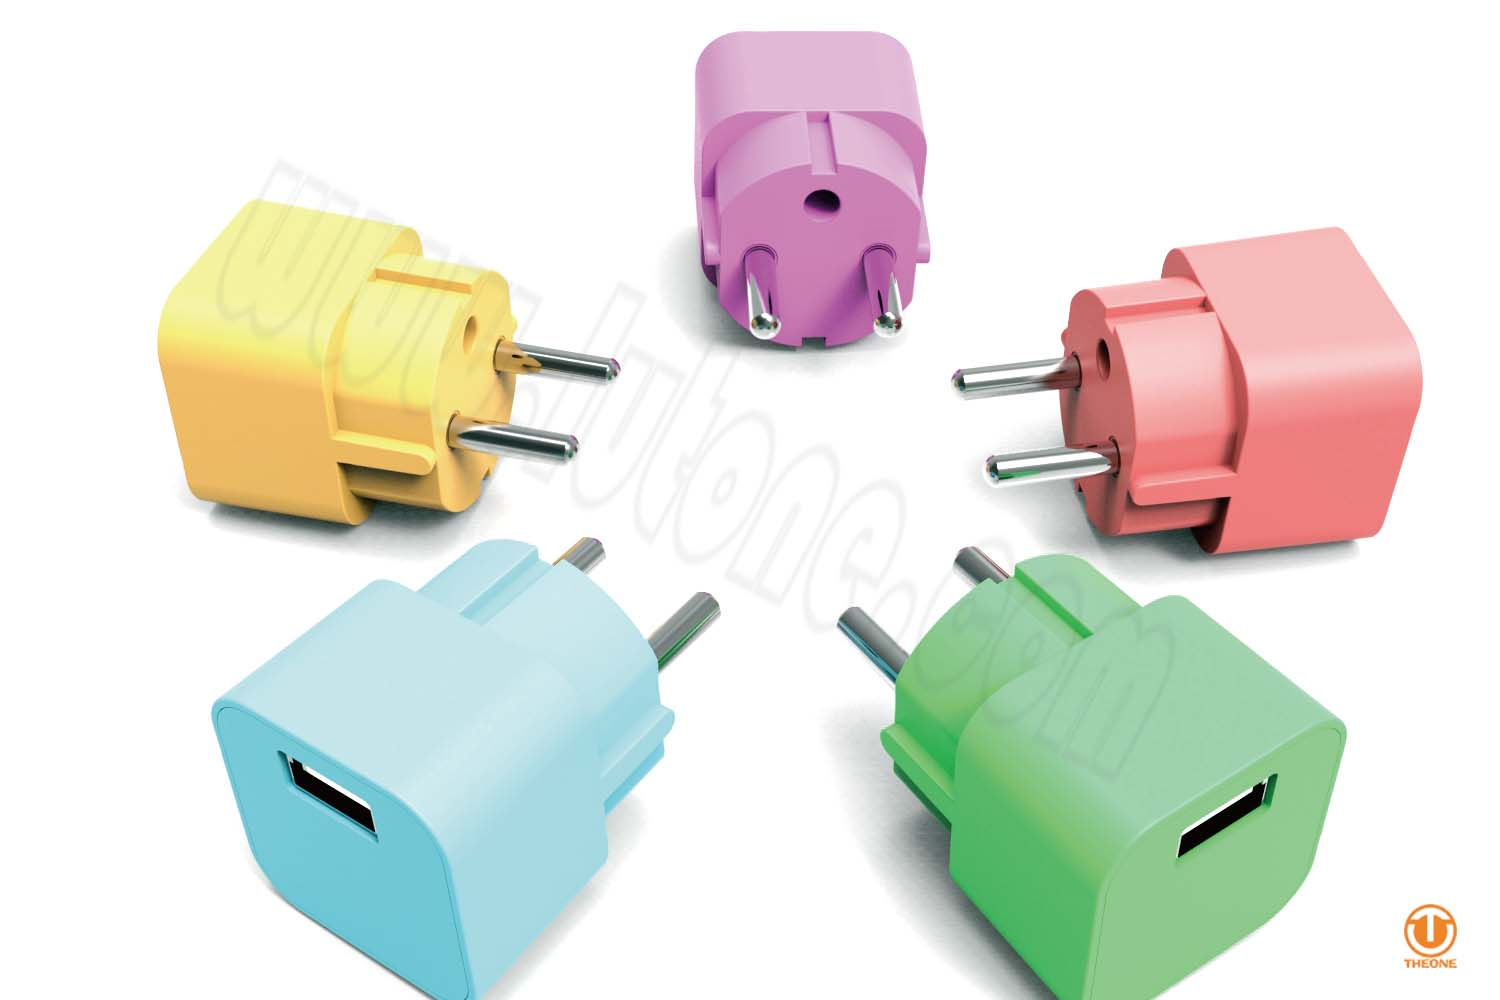 tc03b0-1 usb wall charger